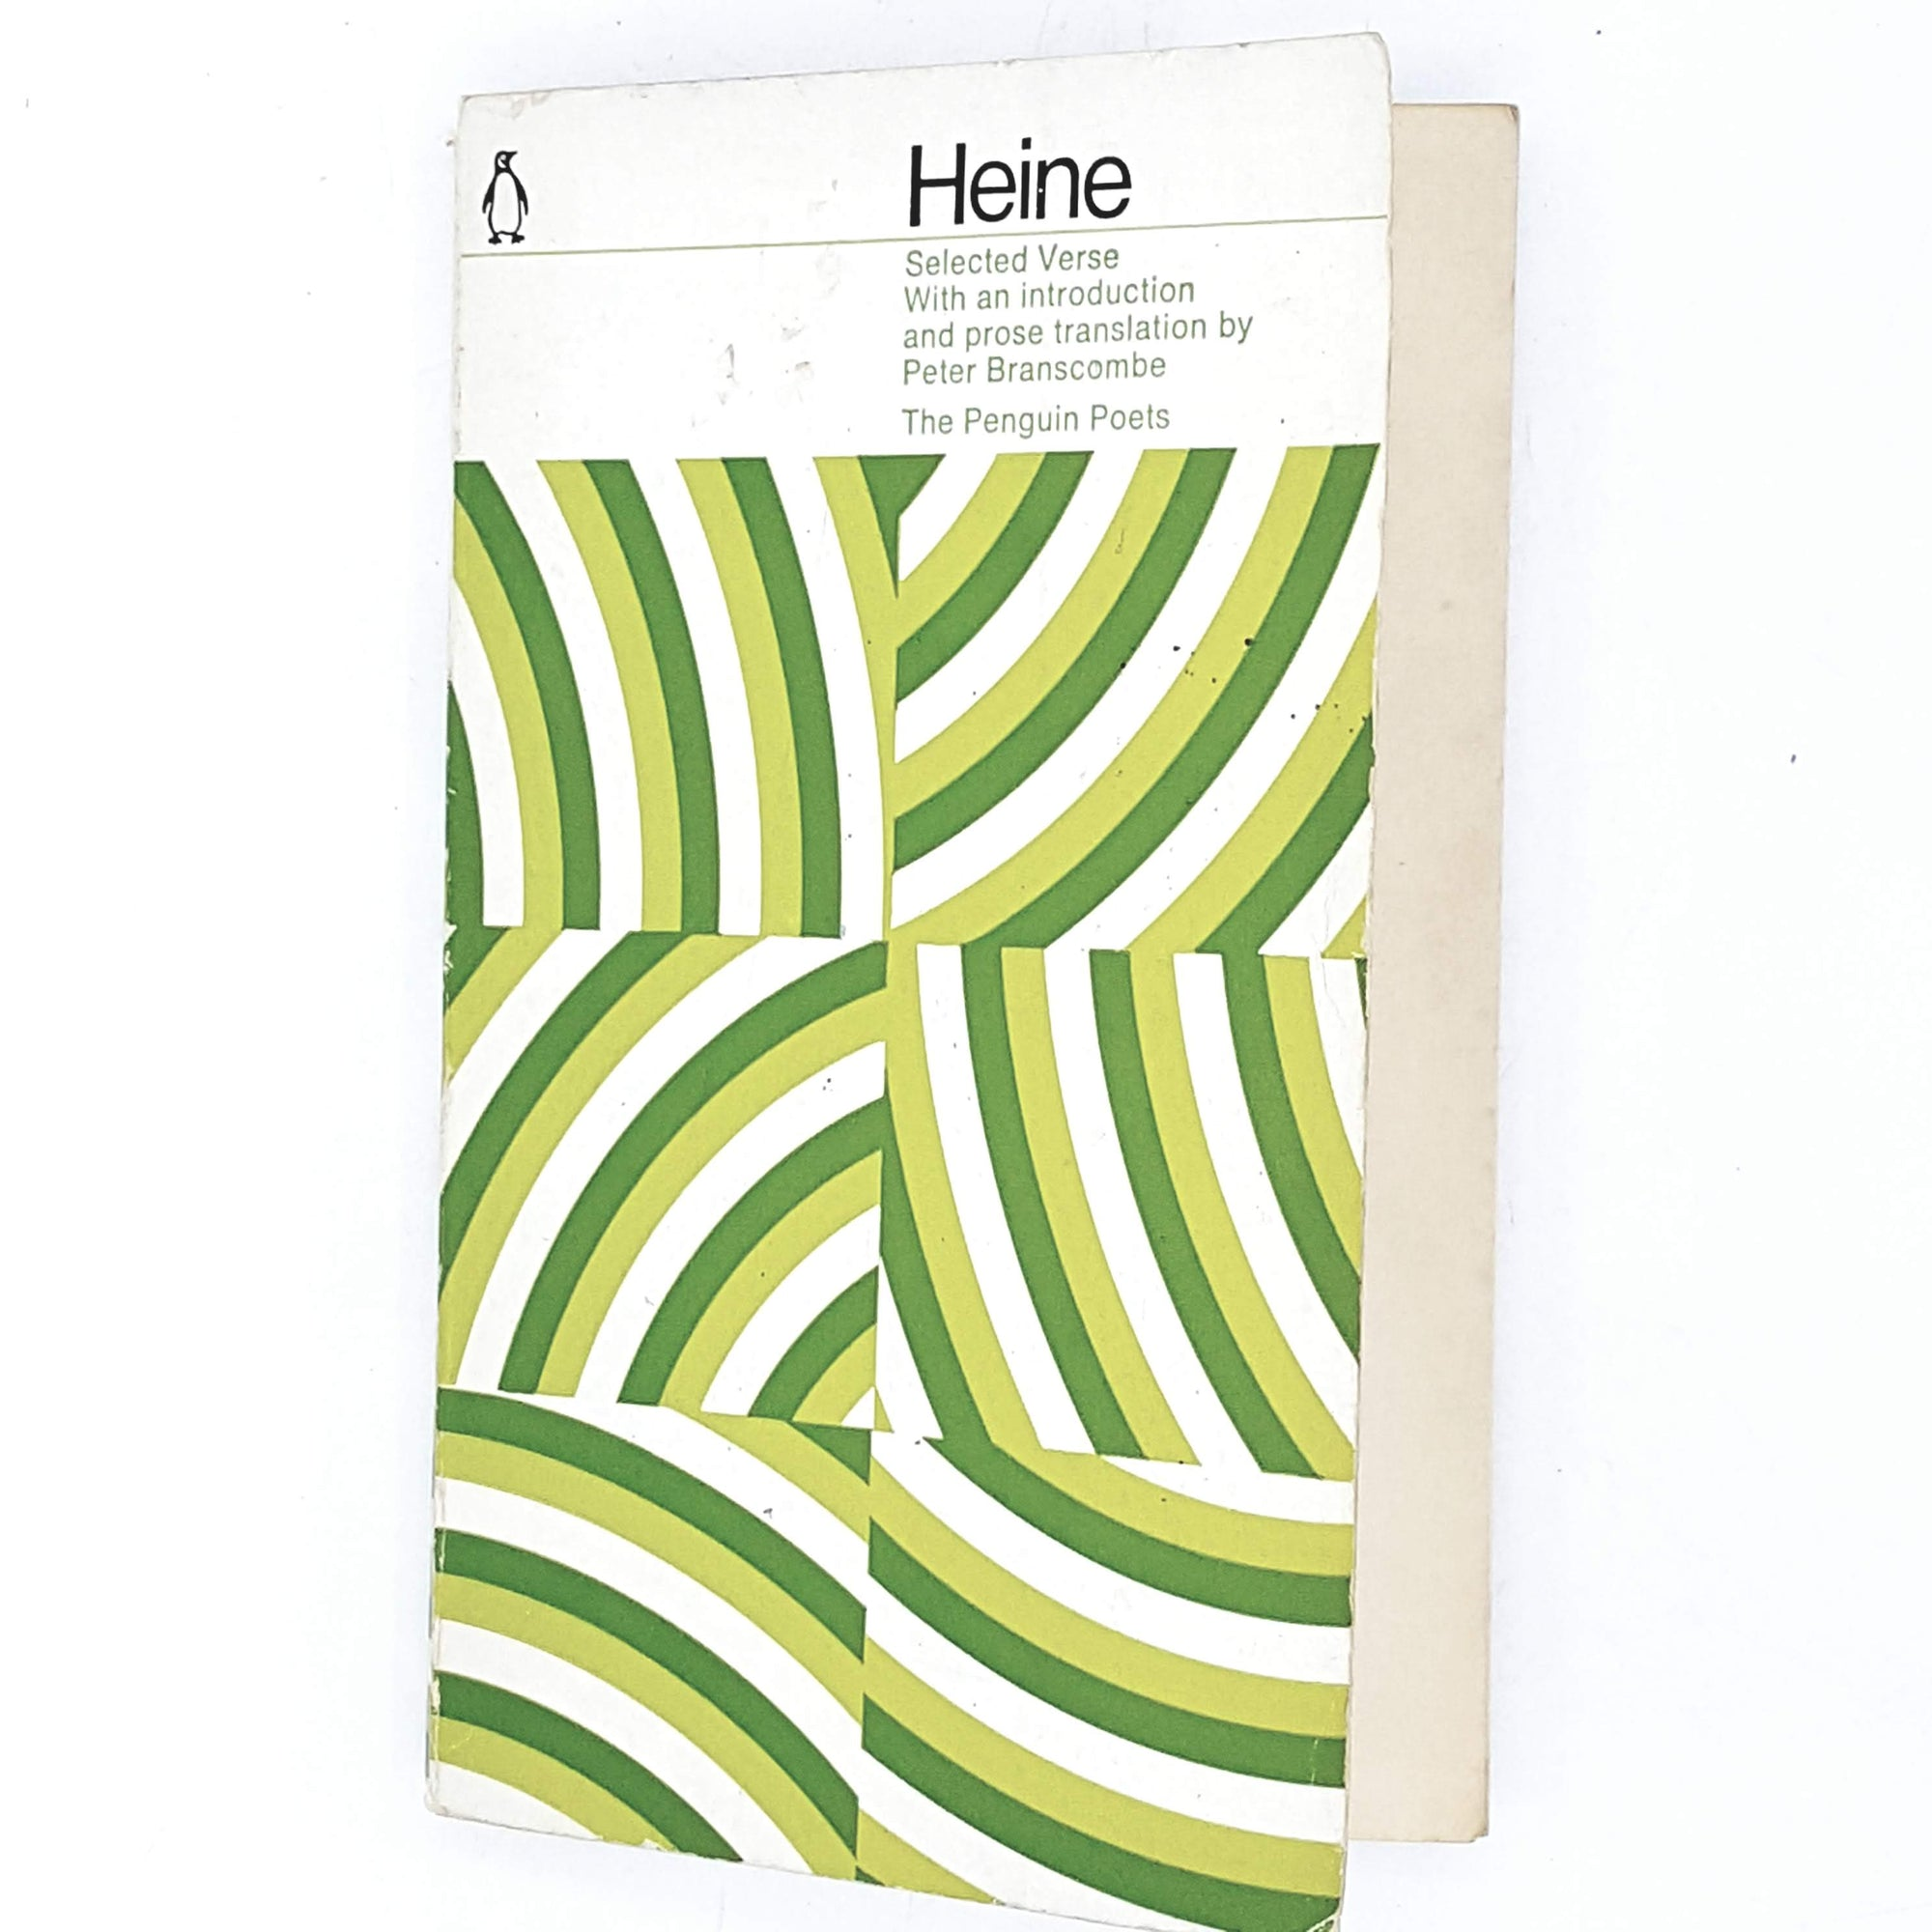 First Edition Penguin: Heine Selected Verse 1967